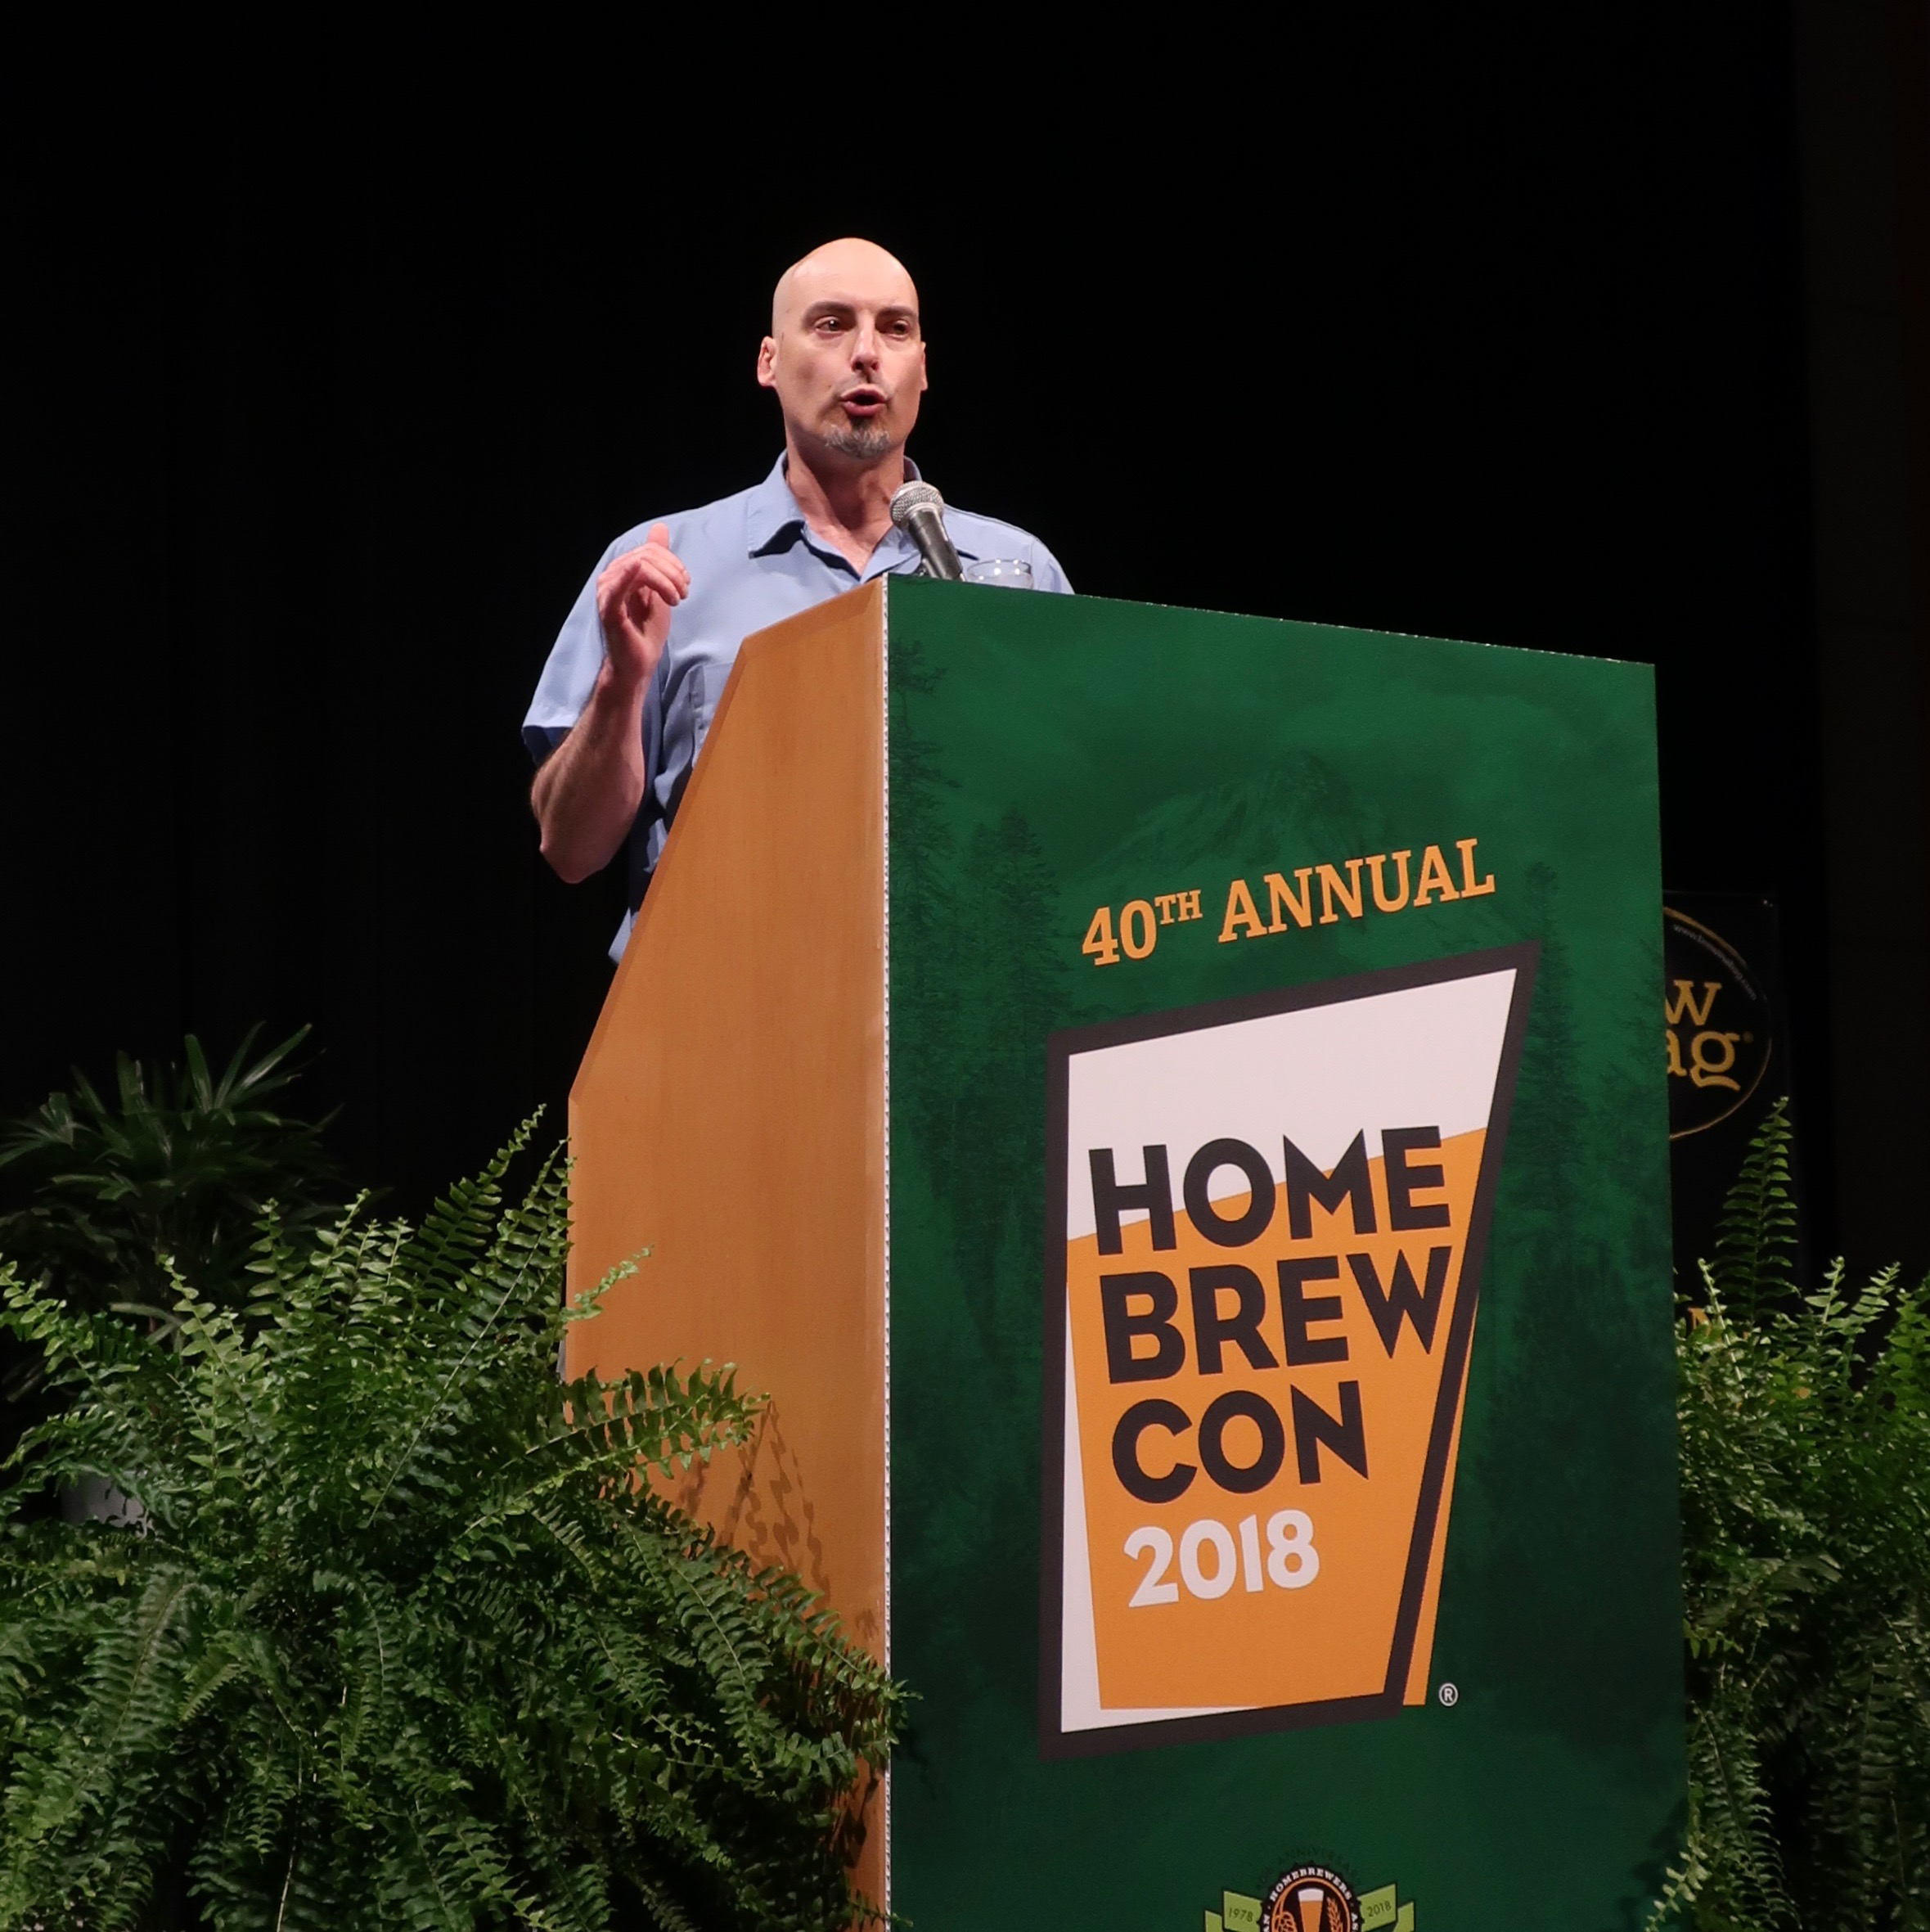 Gary Glass, AHA Director, speaking during the Keynote Address at Homebrew Con 2018.